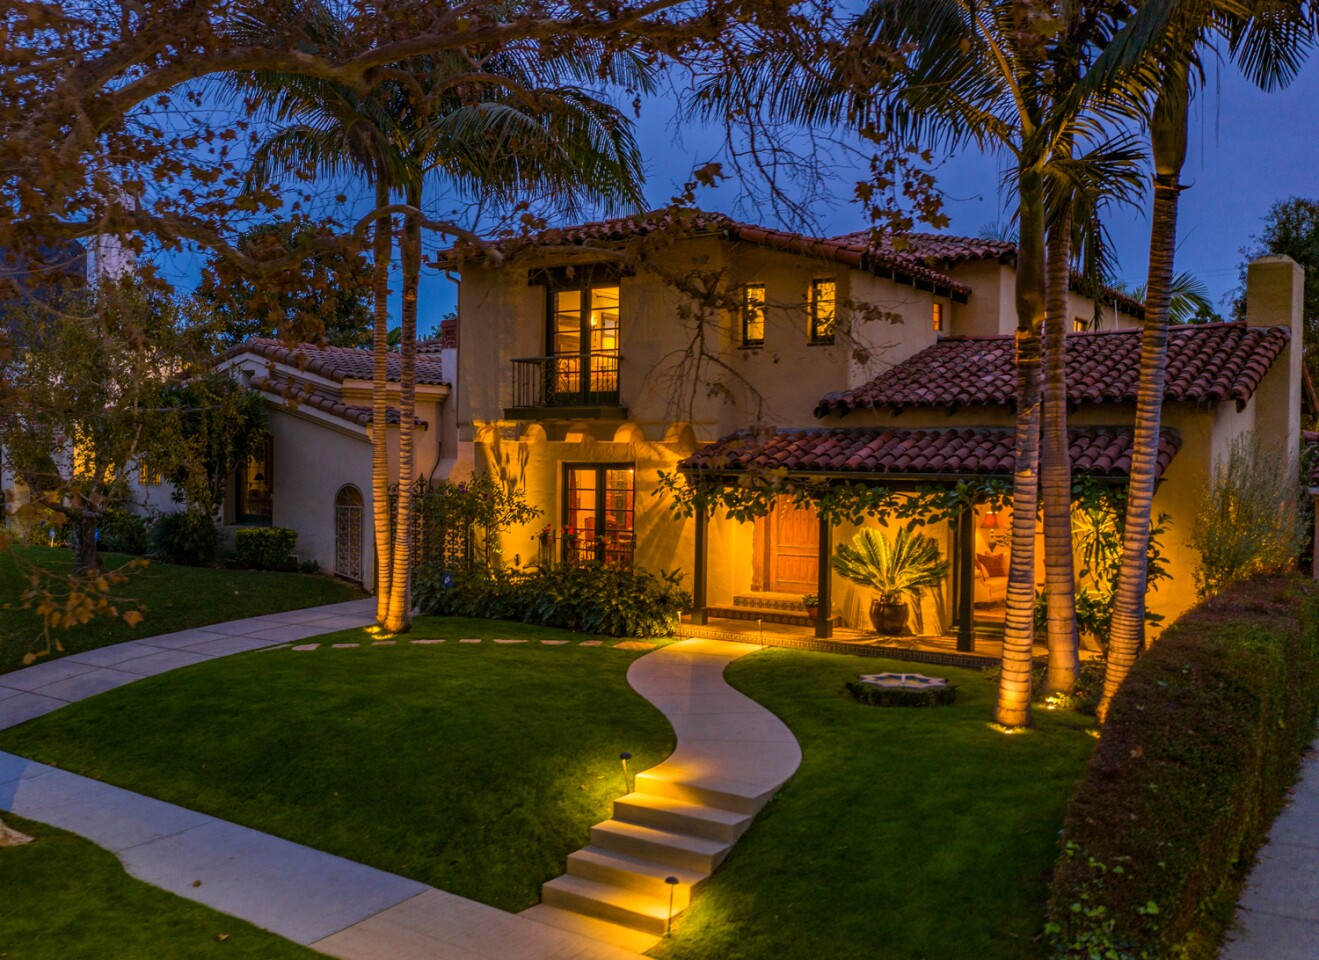 Jeff Olde and Alan Uphold's Beverly Grove house